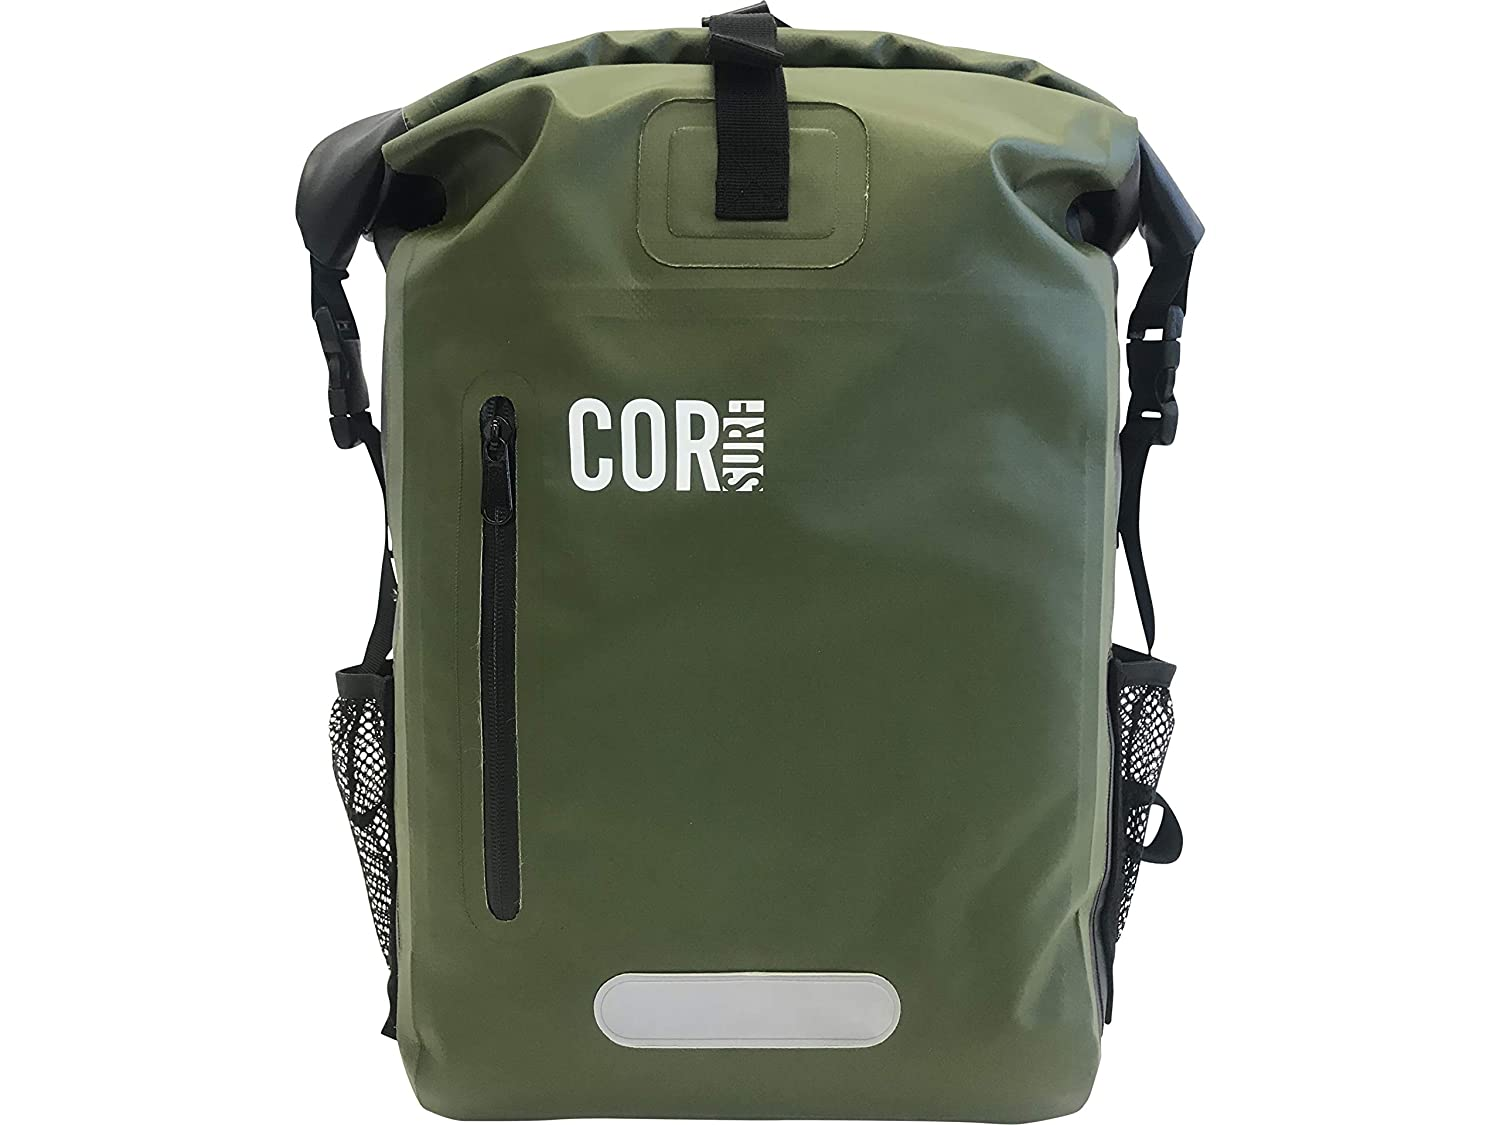 Waterproof Backpack - by Cor Surf   with Padded Laptop Sleeve   25L and 40L   Dry Bag Backpack for Travel, Cycling, Camping, Hiking, Kayak, Rafting or Surf COR Board Racks